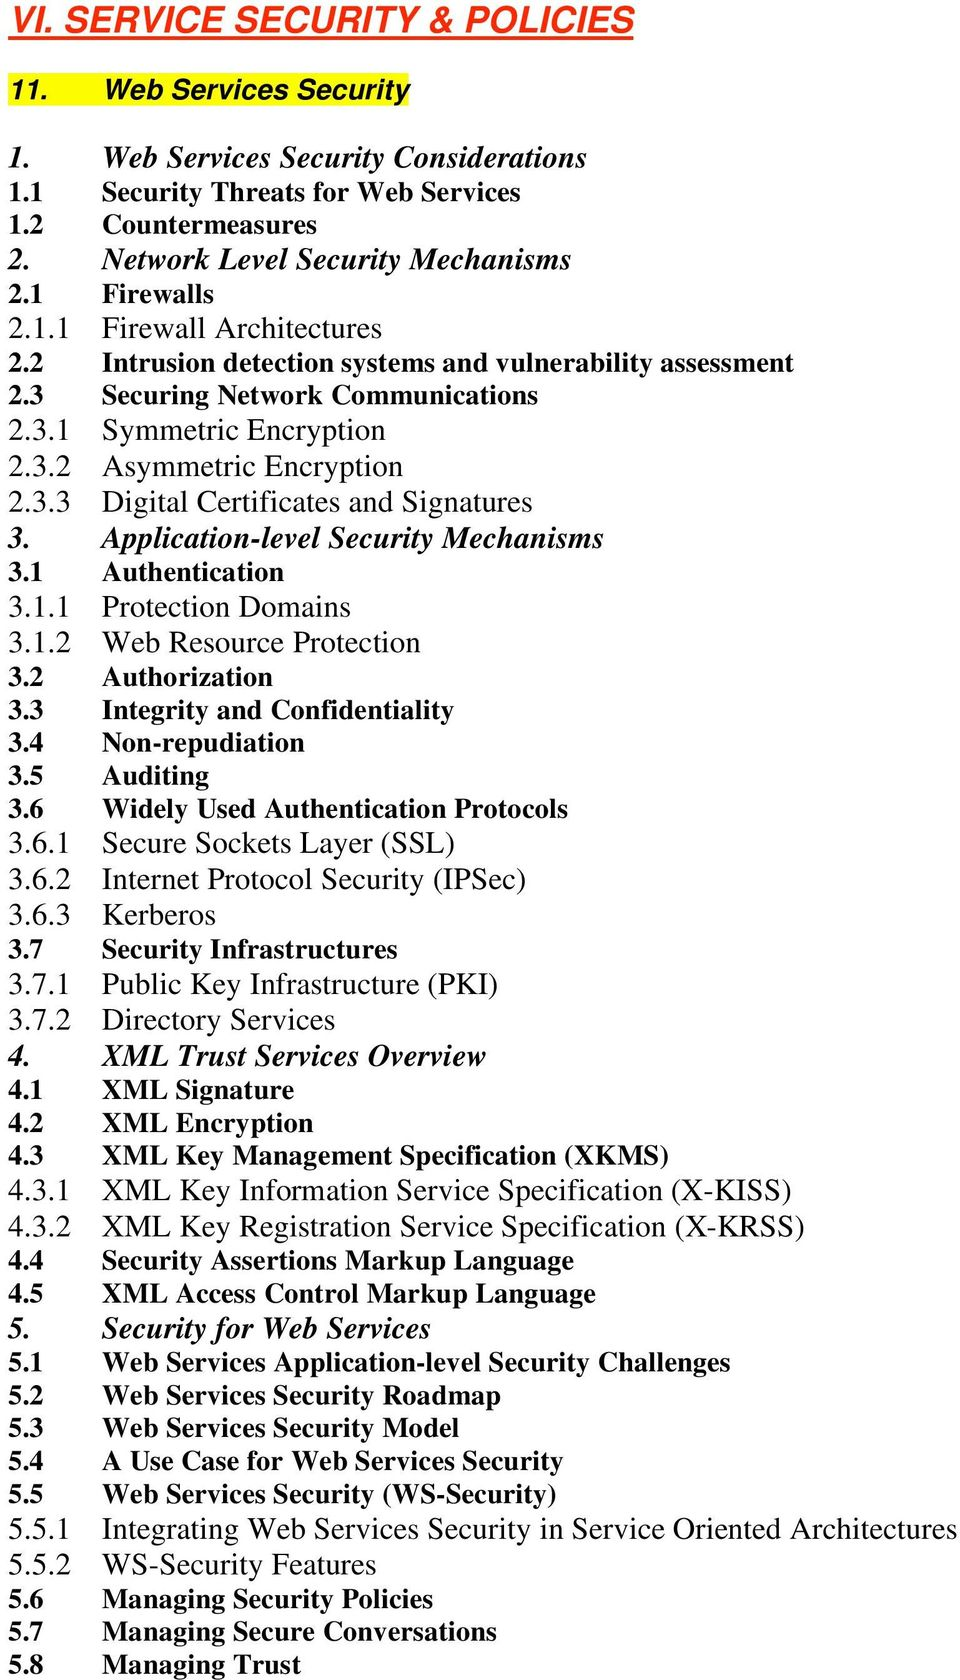 Application-level Security Mechanisms 3.1 Authentication 3.1.1 Protection Domains 3.1.2 Web Resource Protection 3.2 Authorization 3.3 Integrity and Confidentiality 3.4 Non-repudiation 3.5 Auditing 3.